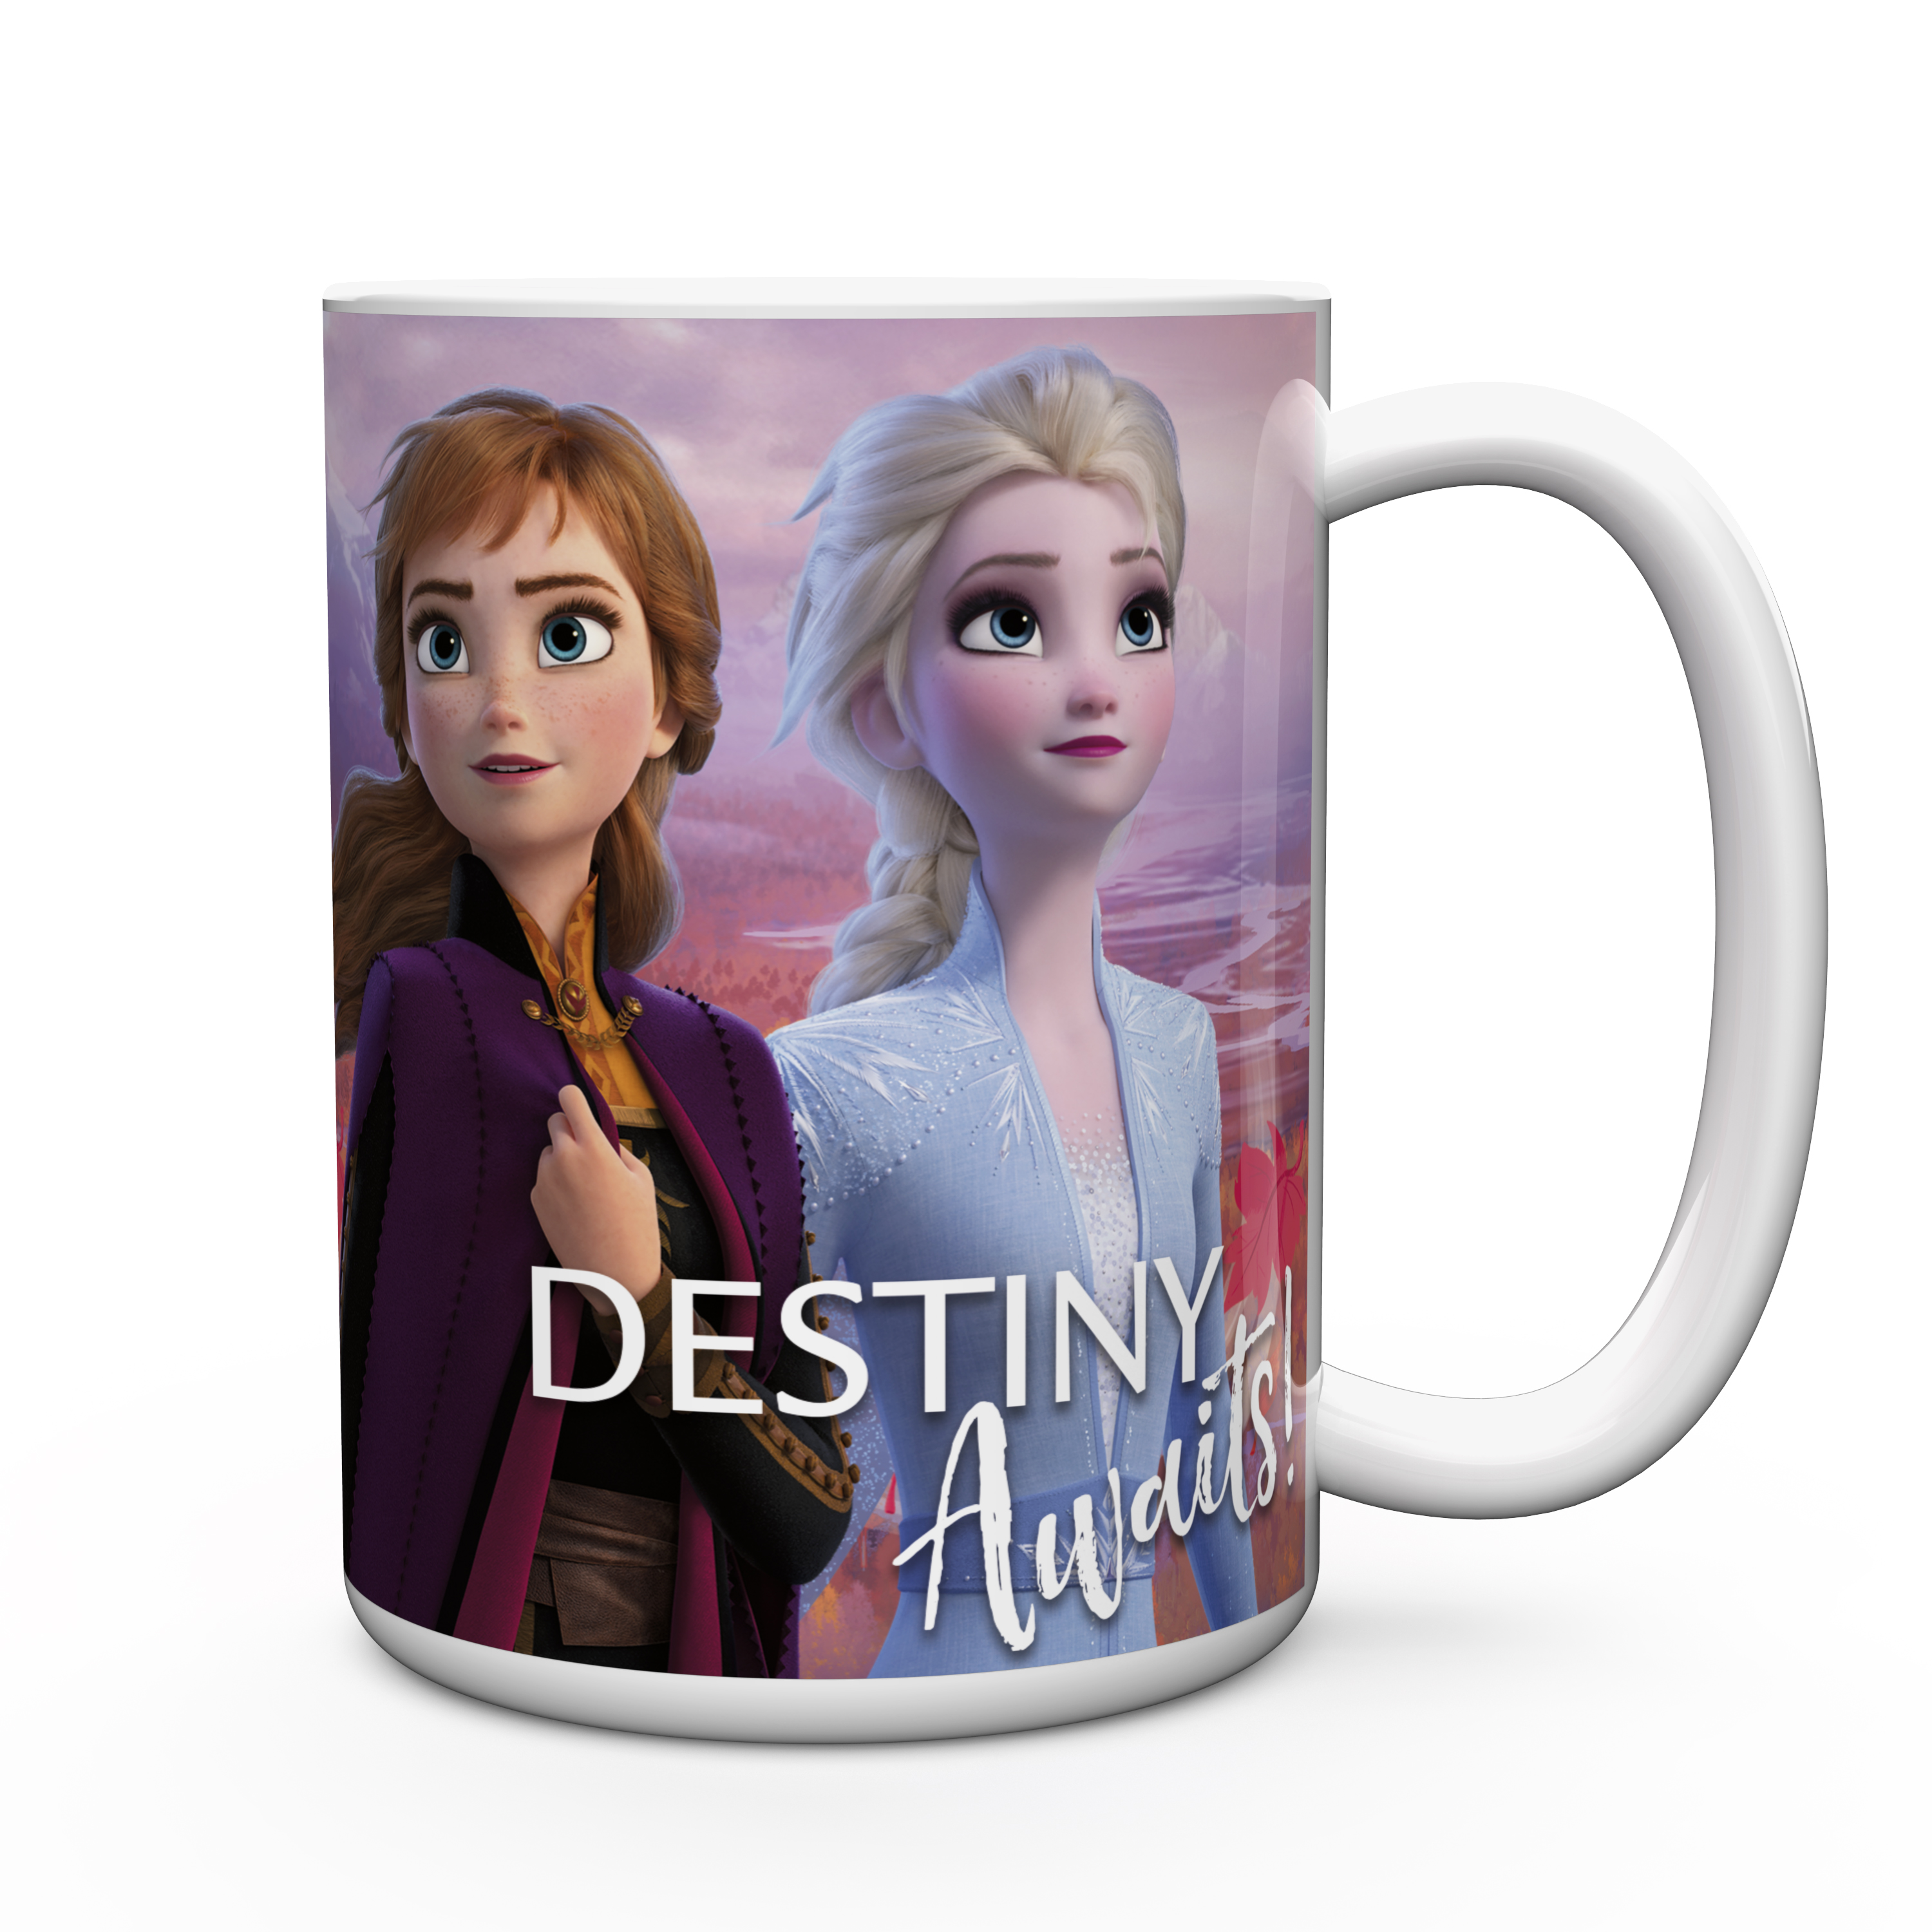 Disney Frozen 2 Movie 15 ounce Coffee Mug and Spoon, Anna, Elsa & Olaf slideshow image 8